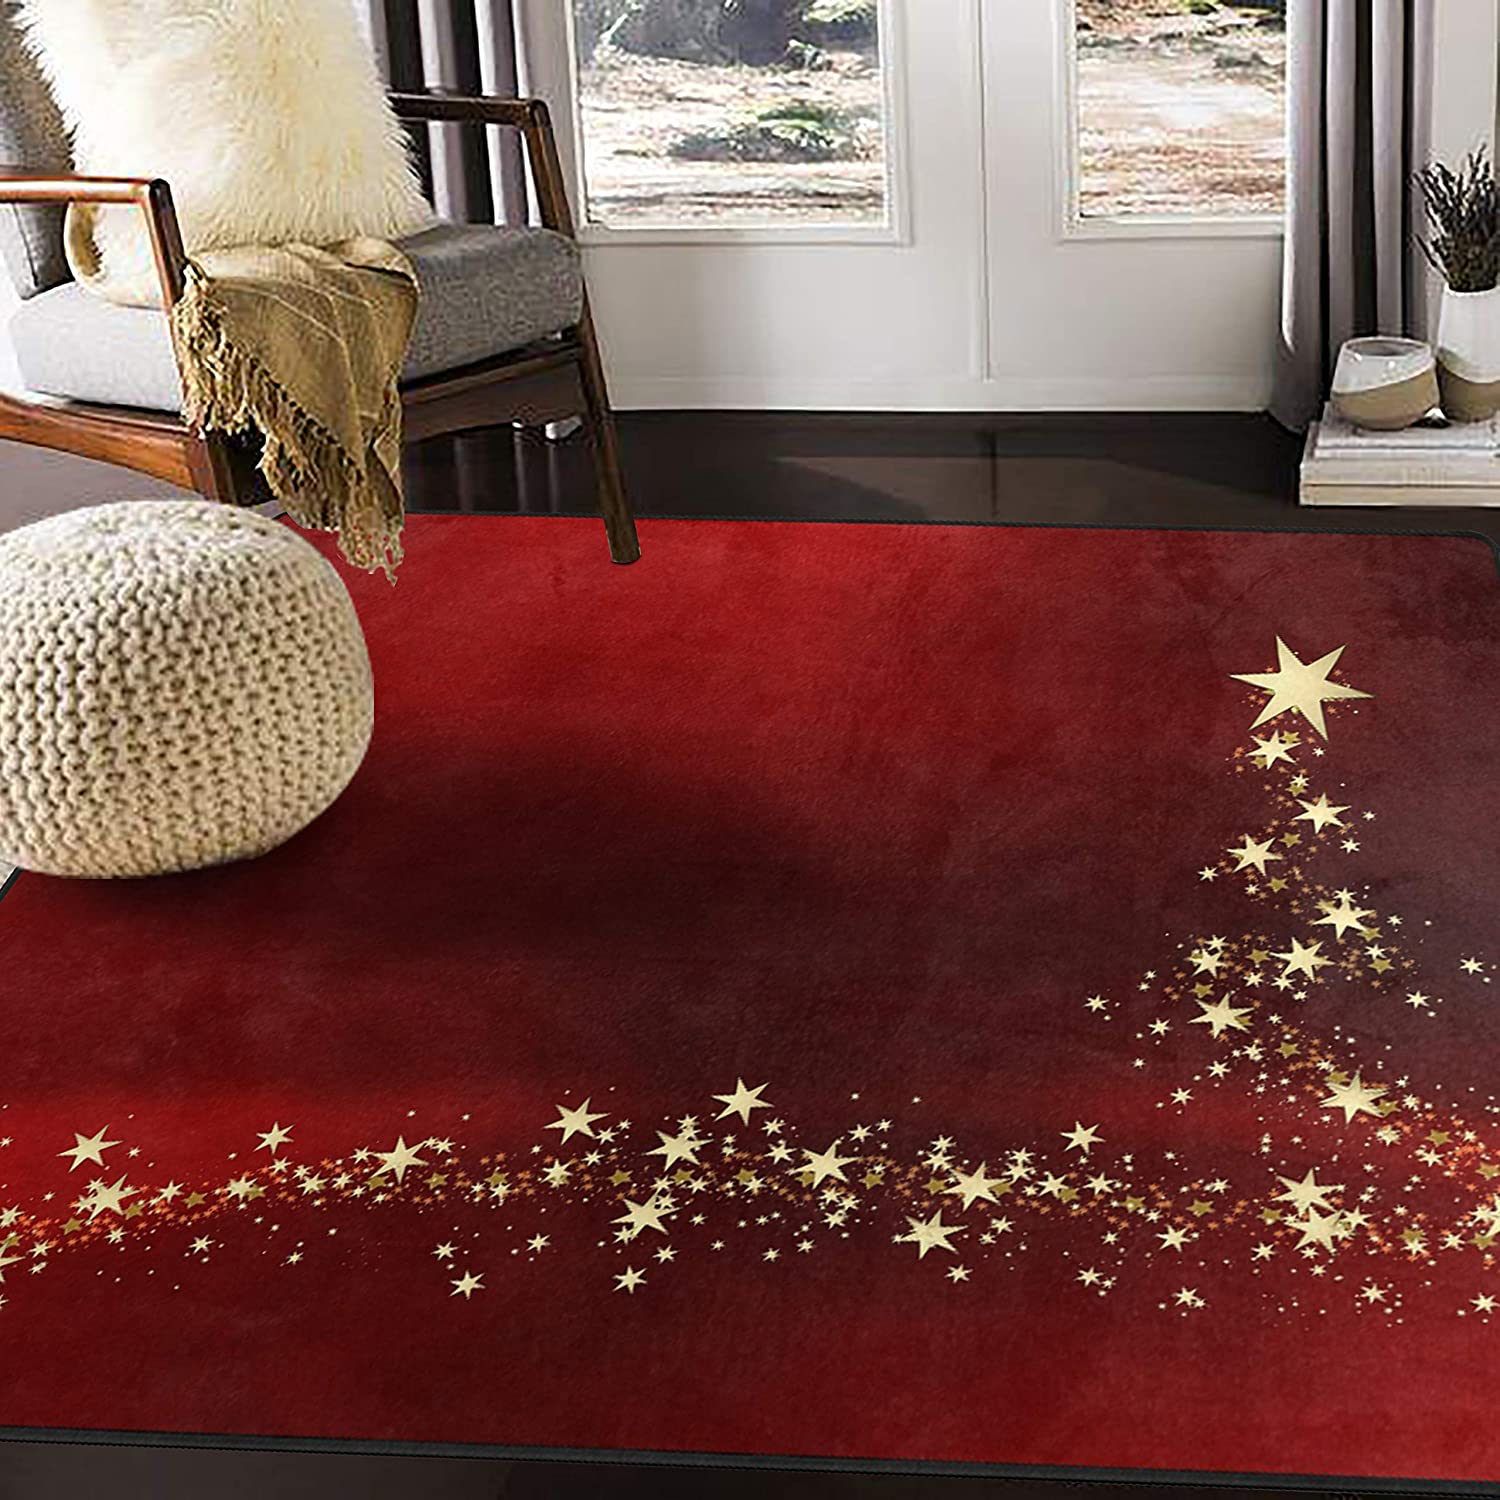 Alaza Christmas Gold Star Red Area Rug Rugs For Living Room Bedroom 7 X 5 Home Kitchen